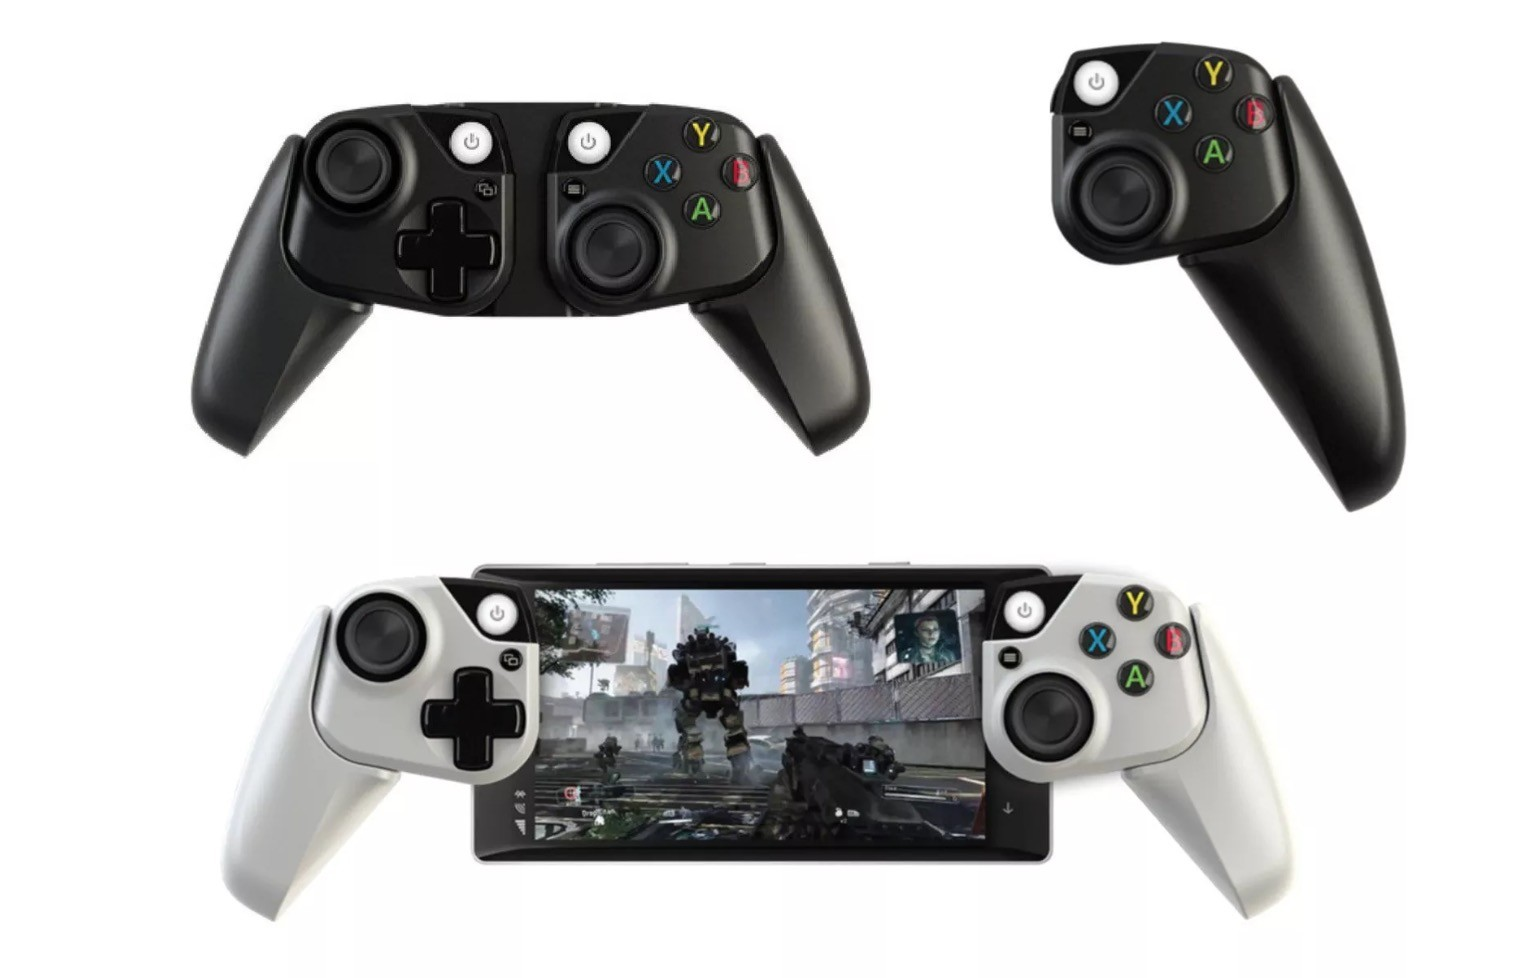 Xbox One controller, Game Controllers, Video Games, , Microsoft Corporation, Mobile game, Mobile Phones, Video Game Consoles, Smartphone, xCloud, smartphone game controller, Game controller, Home game console accessory, Gadget, Joystick, Playstation accessory, Electronic device, Video game accessory, Xbox accessory, Technology, Input device